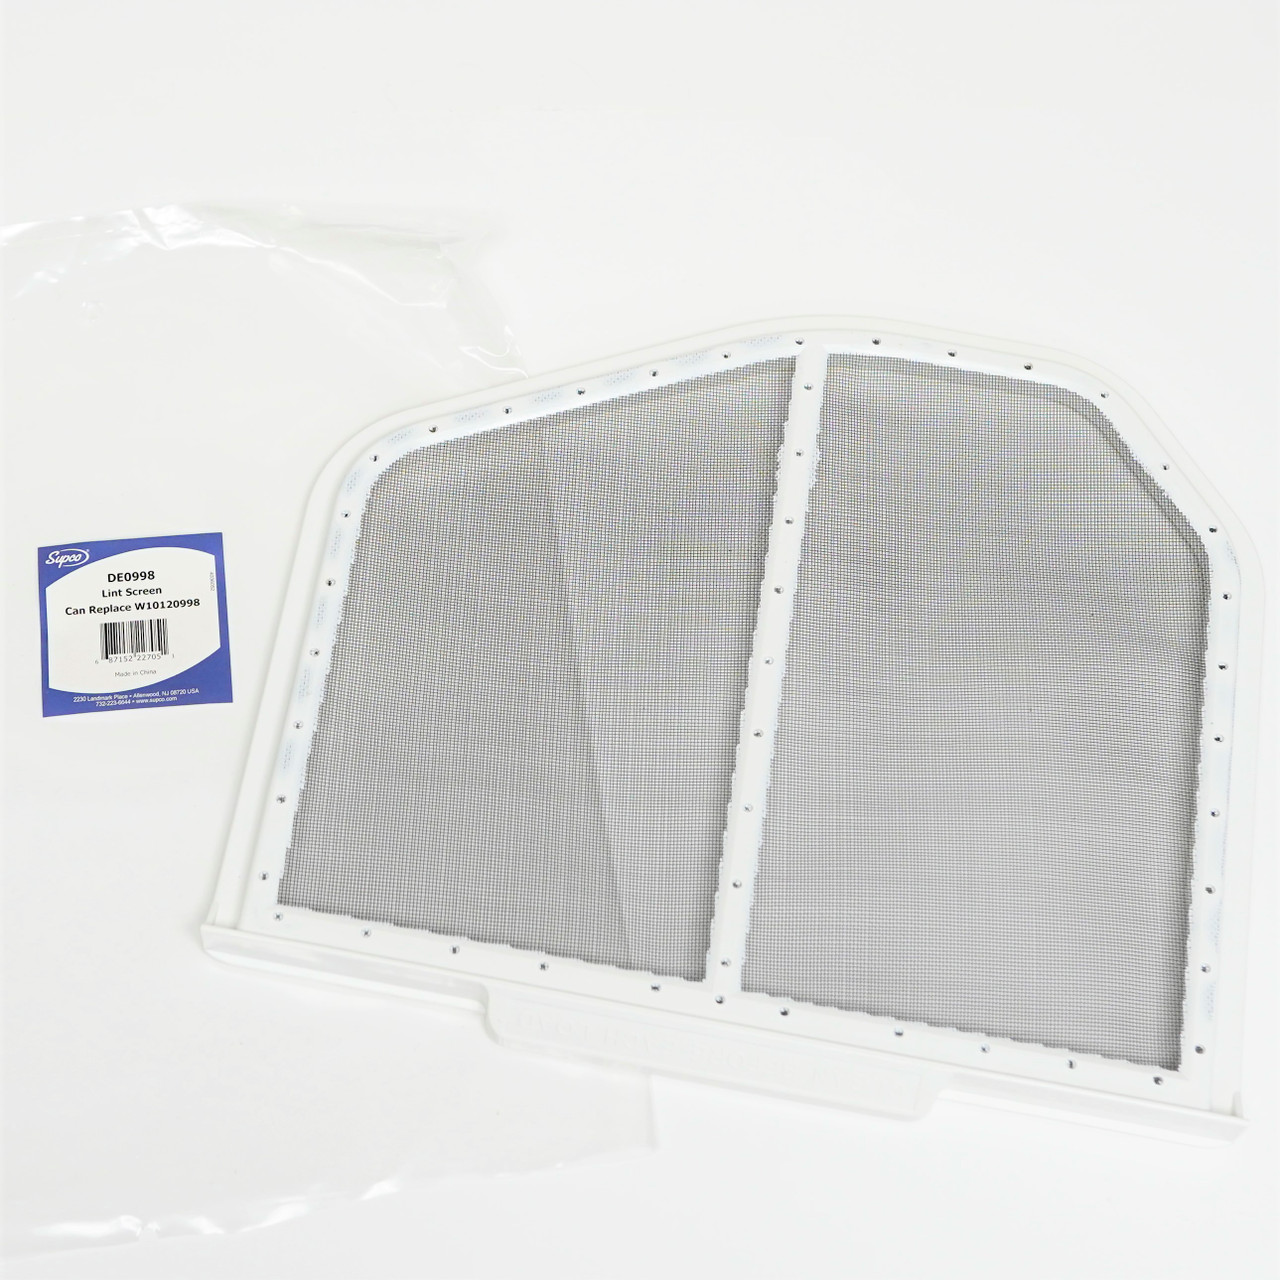 2-Pack W10120998 Dryer Lint Screen Replacement for Whirlpool GEQ9800PW1 Compatible with 8066170 Lint Screen Filter Catcher